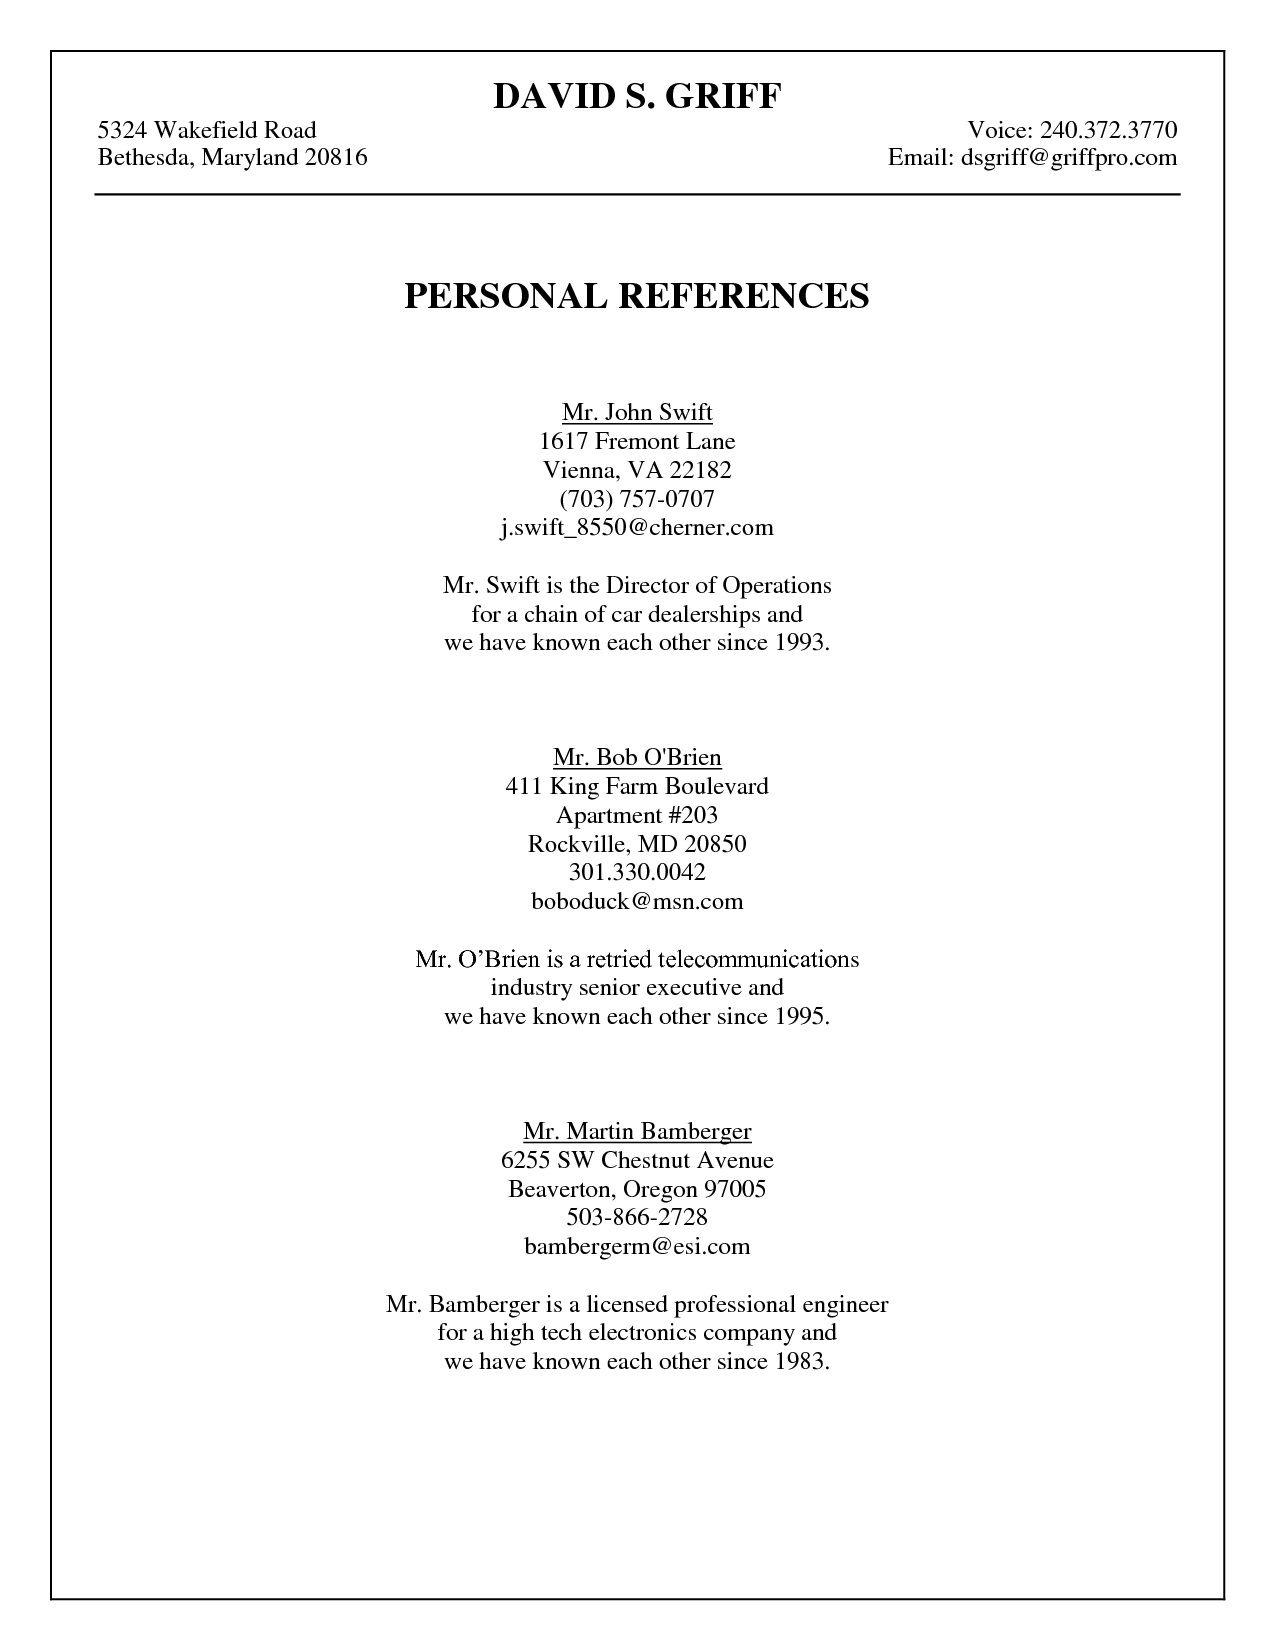 009 Striking Professional Reference List Template Word High Resolution  FreeFull